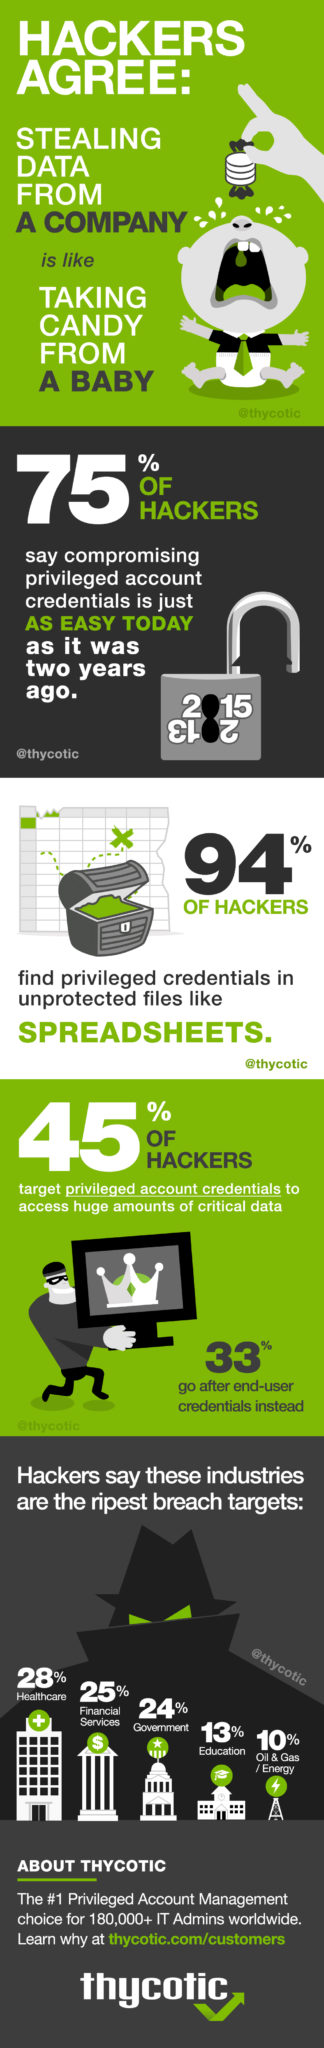 Hacking Stats 2015 - Hacking Infographic Black Hat Hacker Survey Report 2015 | Hacking Statistics